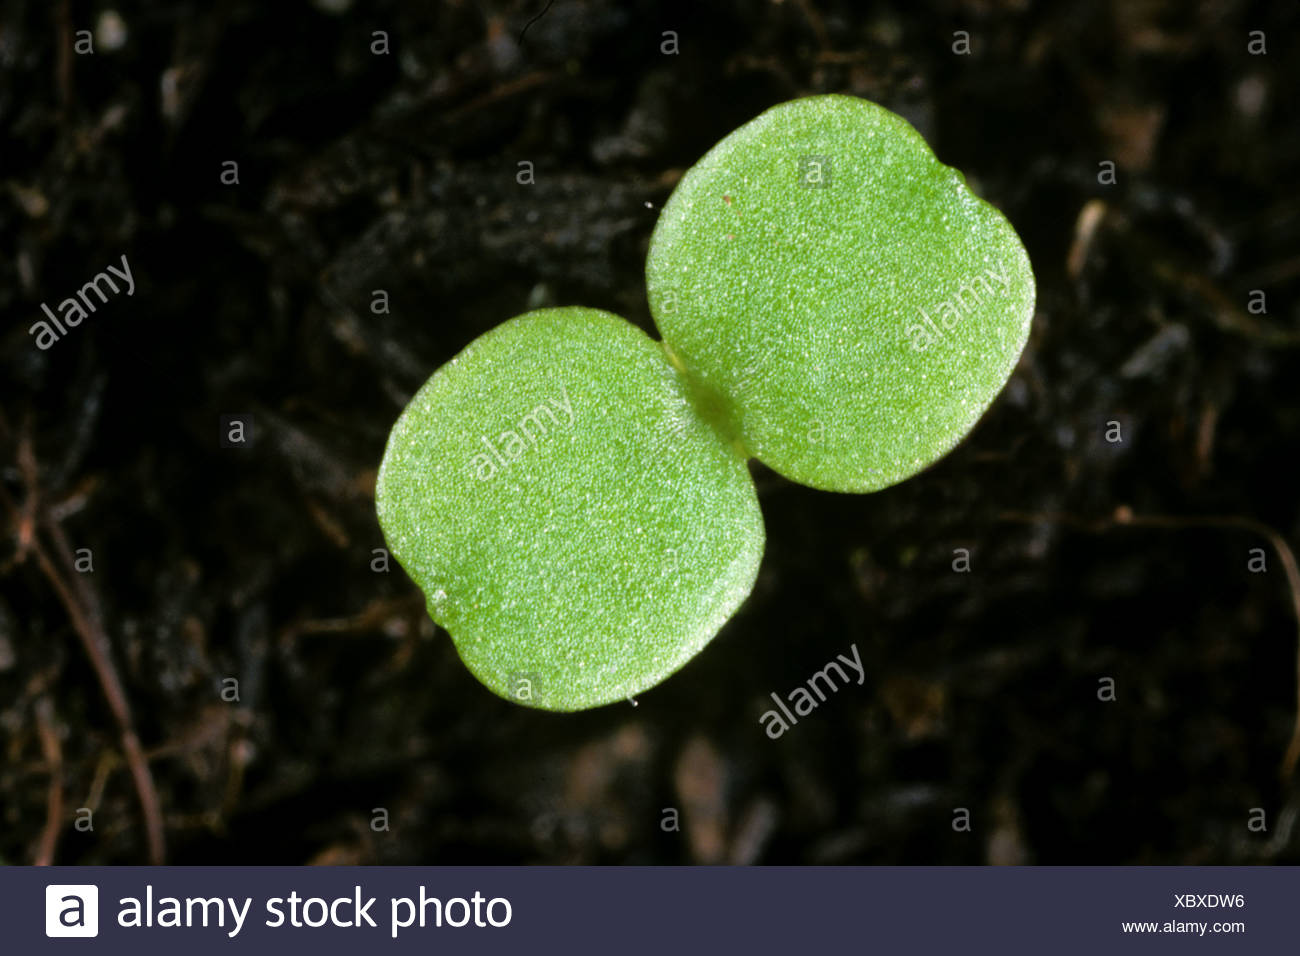 Gallant Soldier (Galinsoga parviflora) seedling cotyledons only - Stock Image